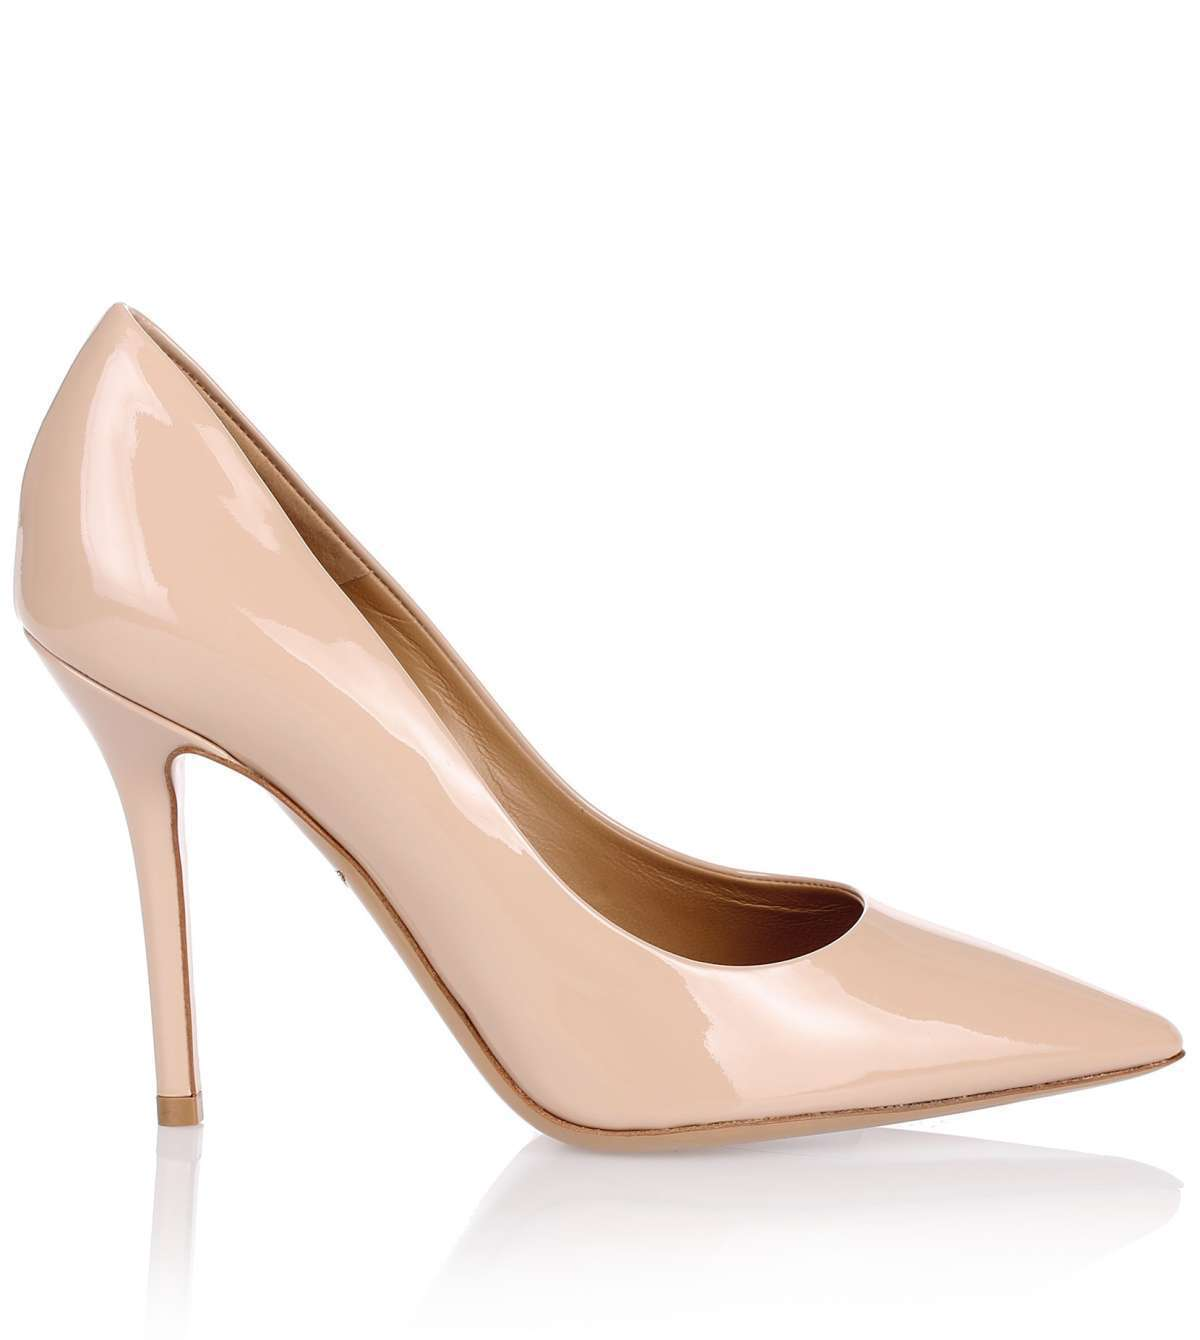 Susi 100 patent nude pump パテントレザーパンプス